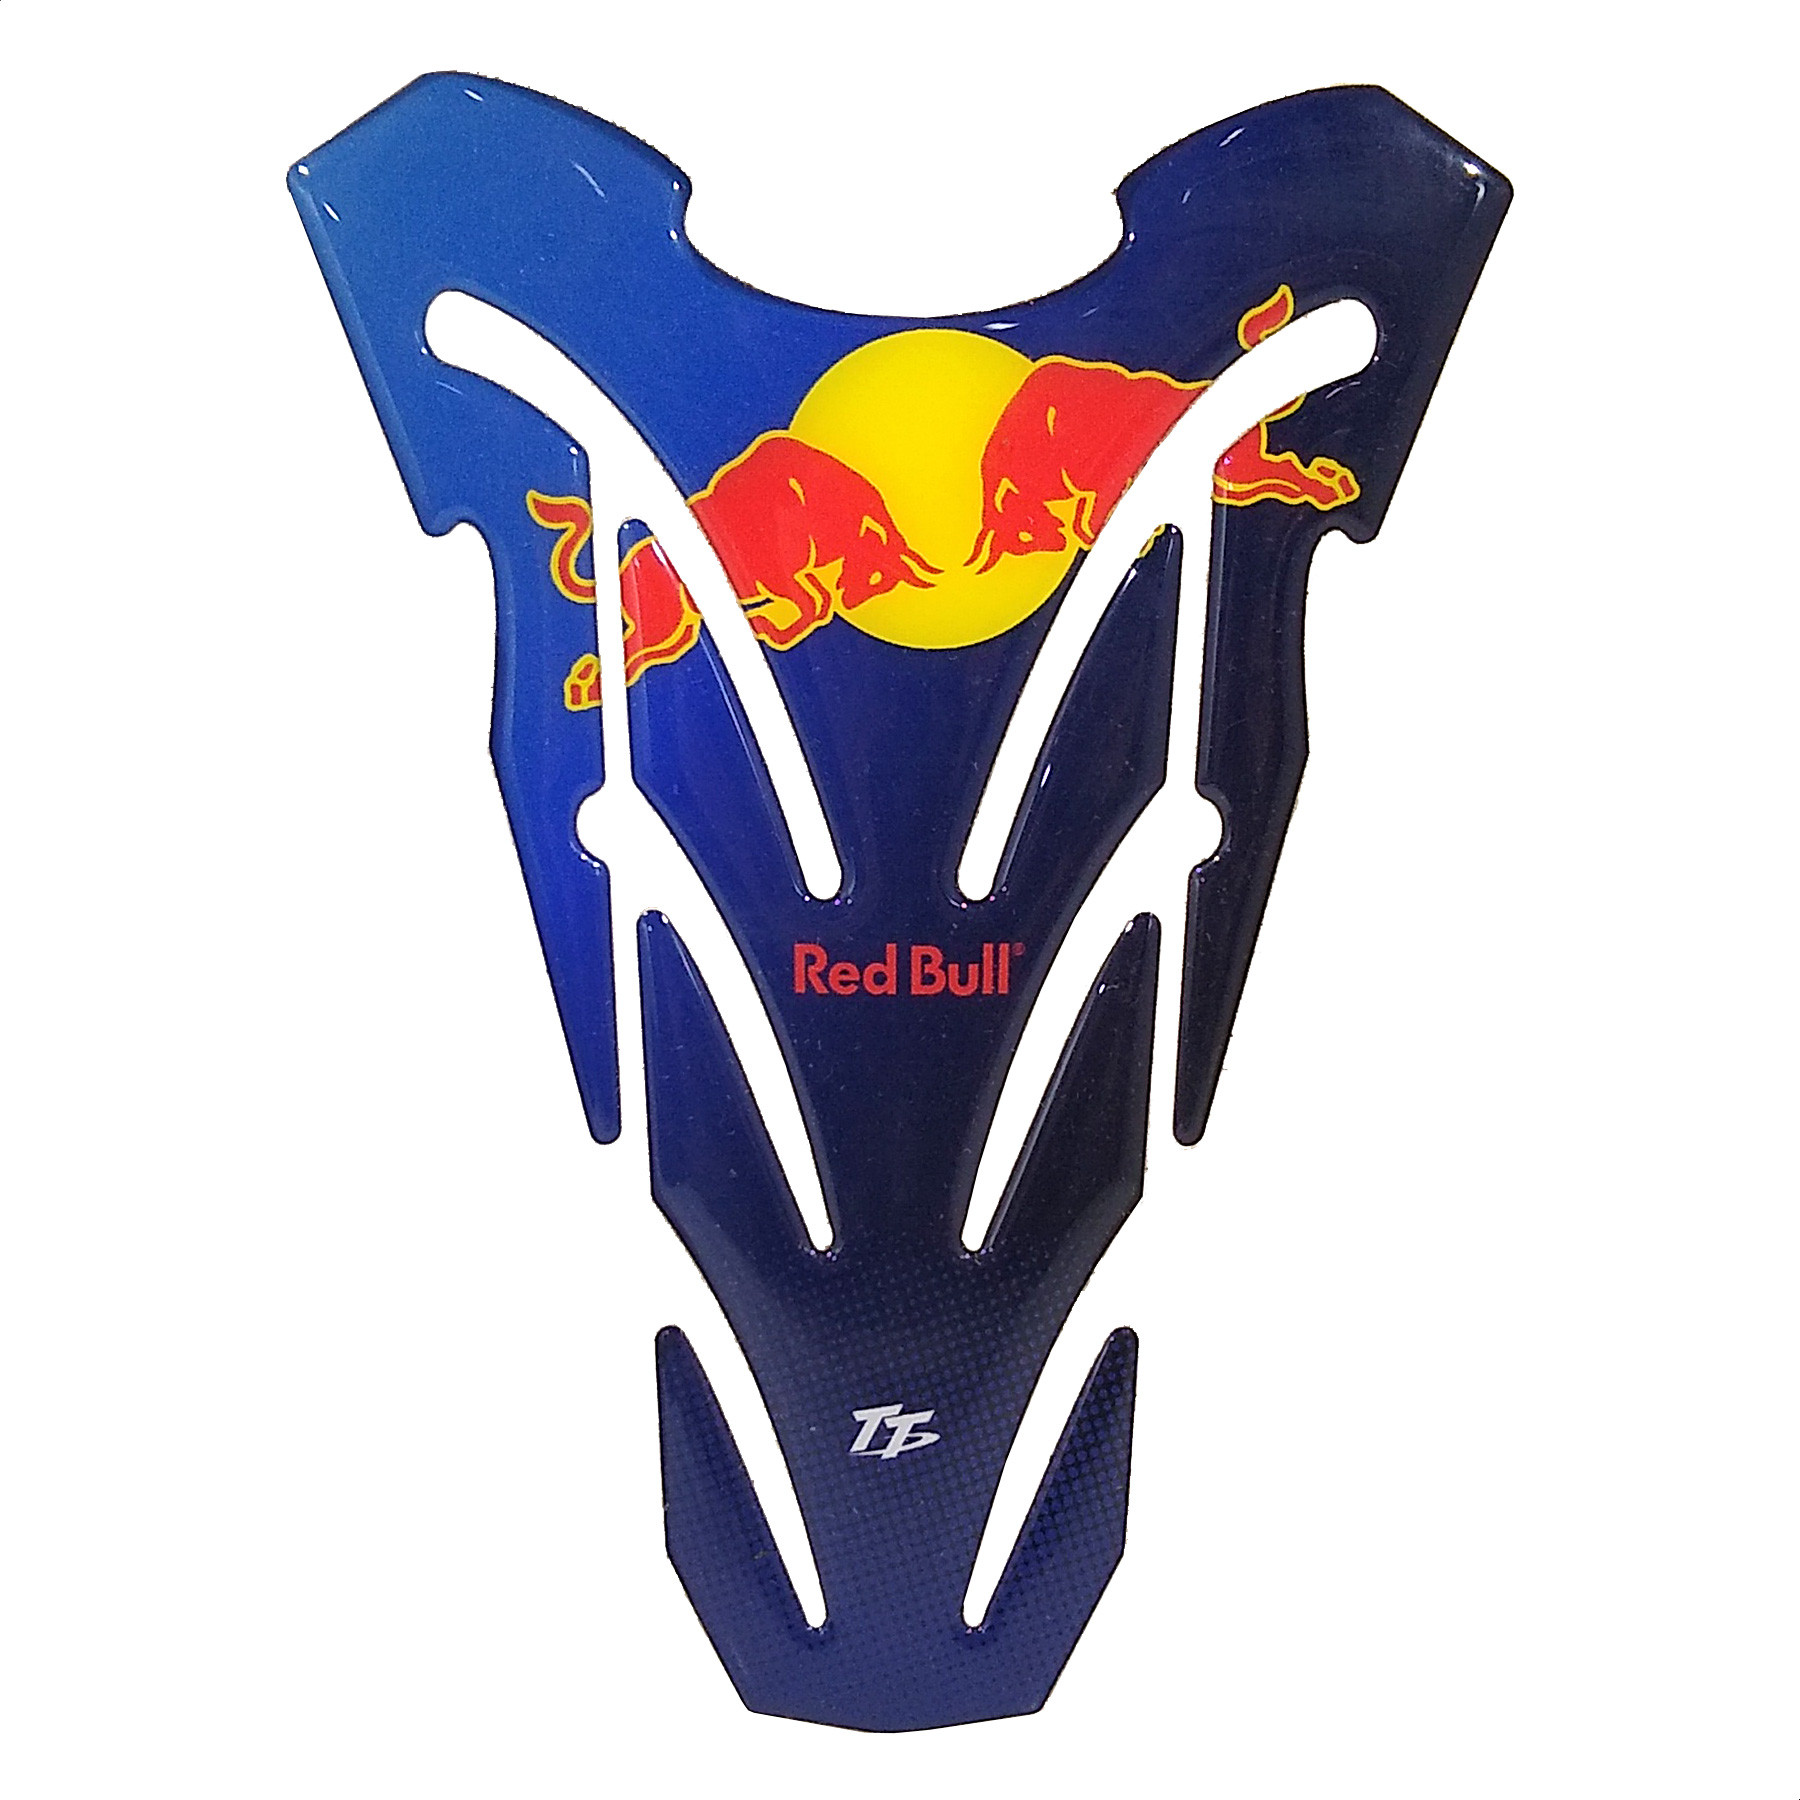 Pad Protector de Tanque Red Bull Trends Team